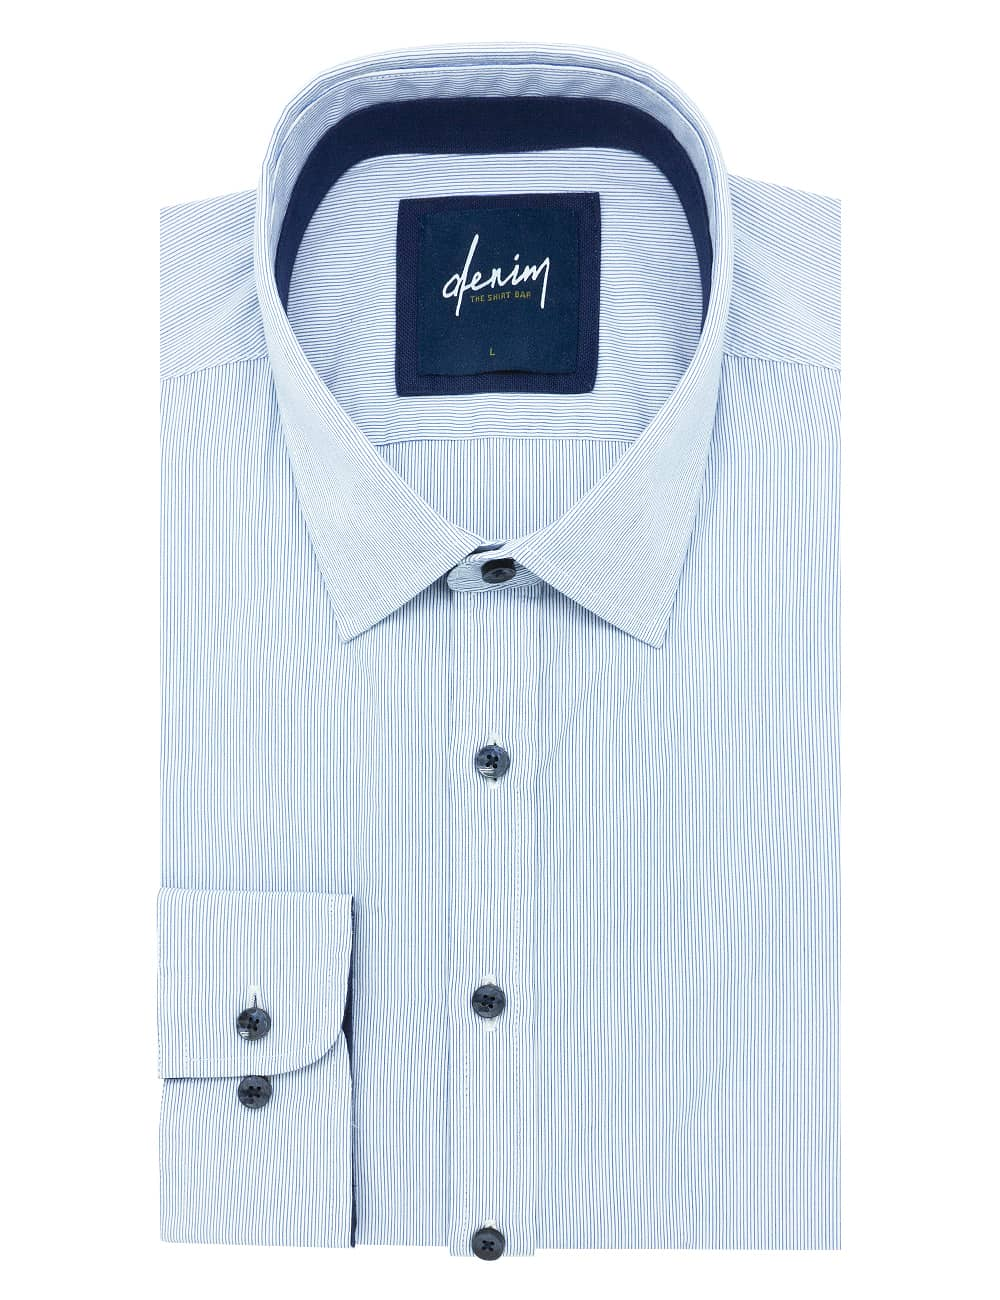 Relaxed Fit White with Blue Micro Stripes Denim Collection 100% Cotton Long Sleeve Single Cuff Shirt RF2BA6.7